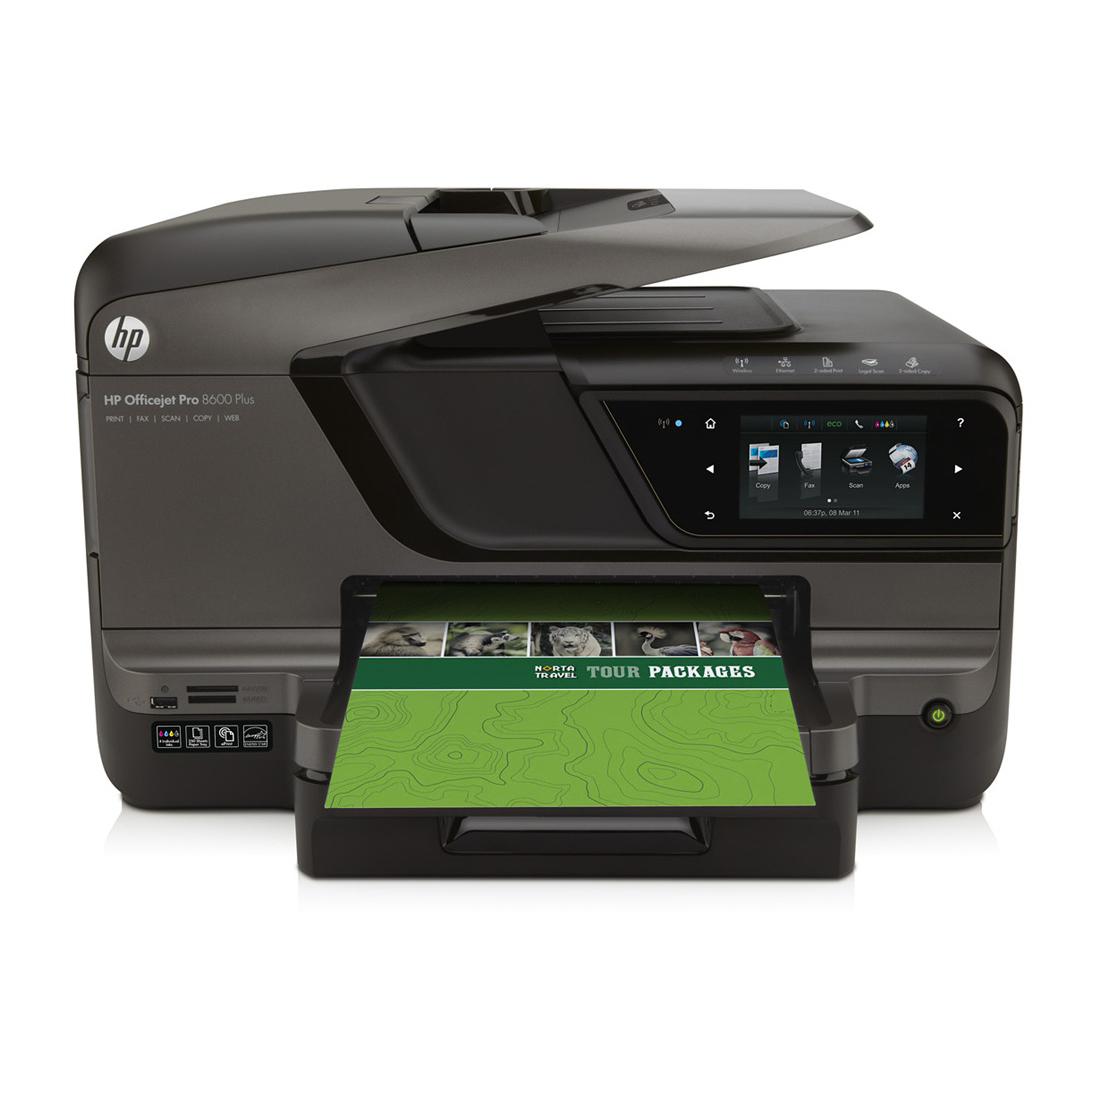 hp officejet pro 8600 plus cartouche hp 950 xl noire. Black Bedroom Furniture Sets. Home Design Ideas